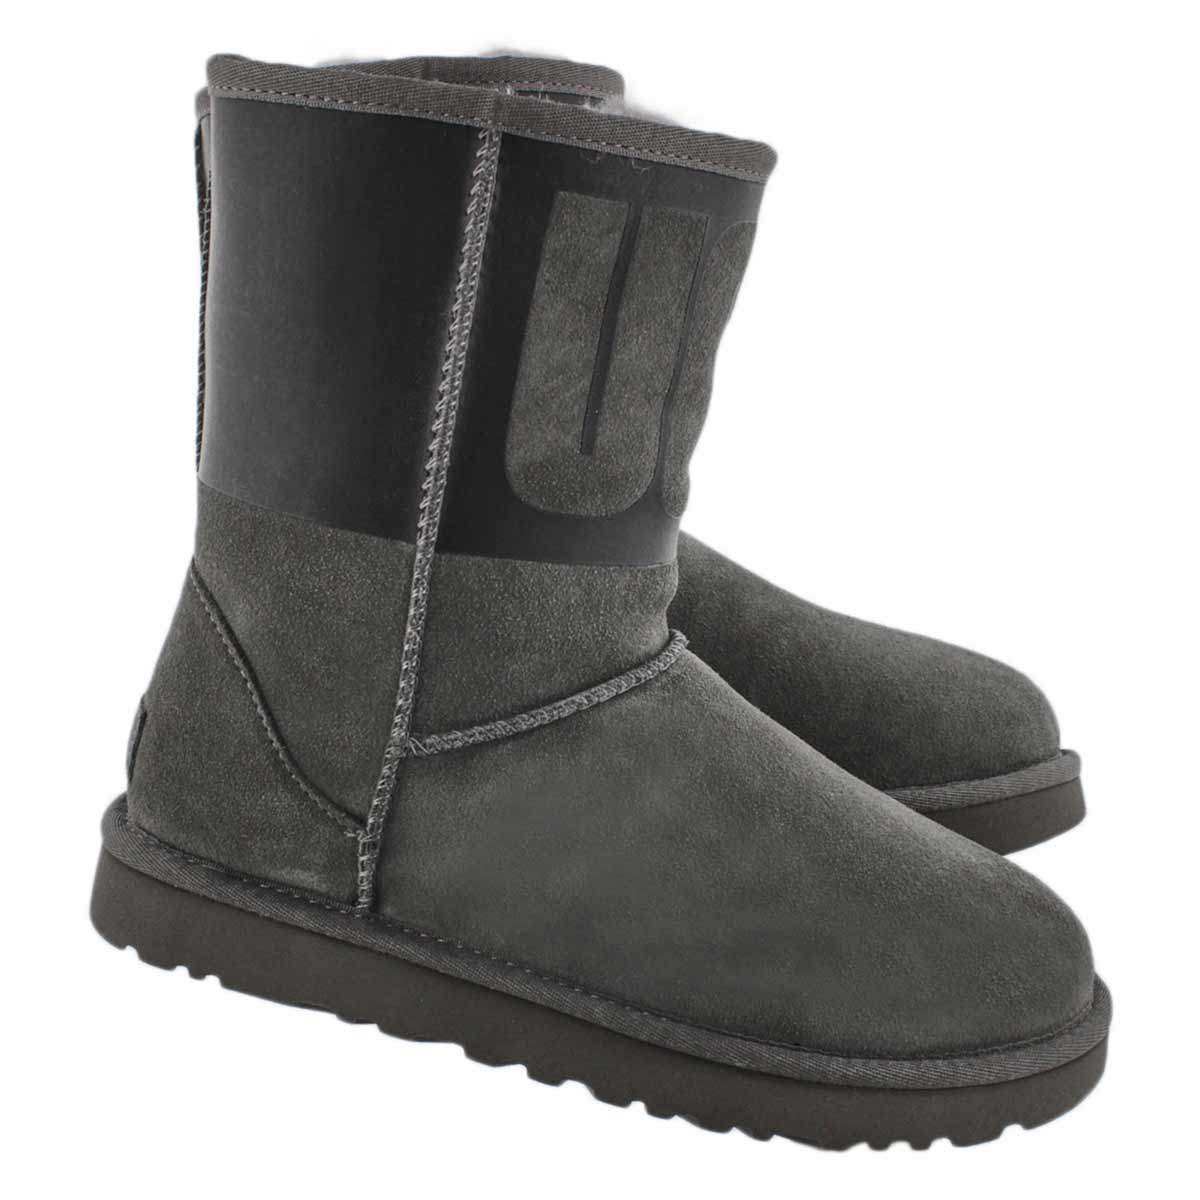 Lds Classic Short Ugg Rubber gy/bk boot